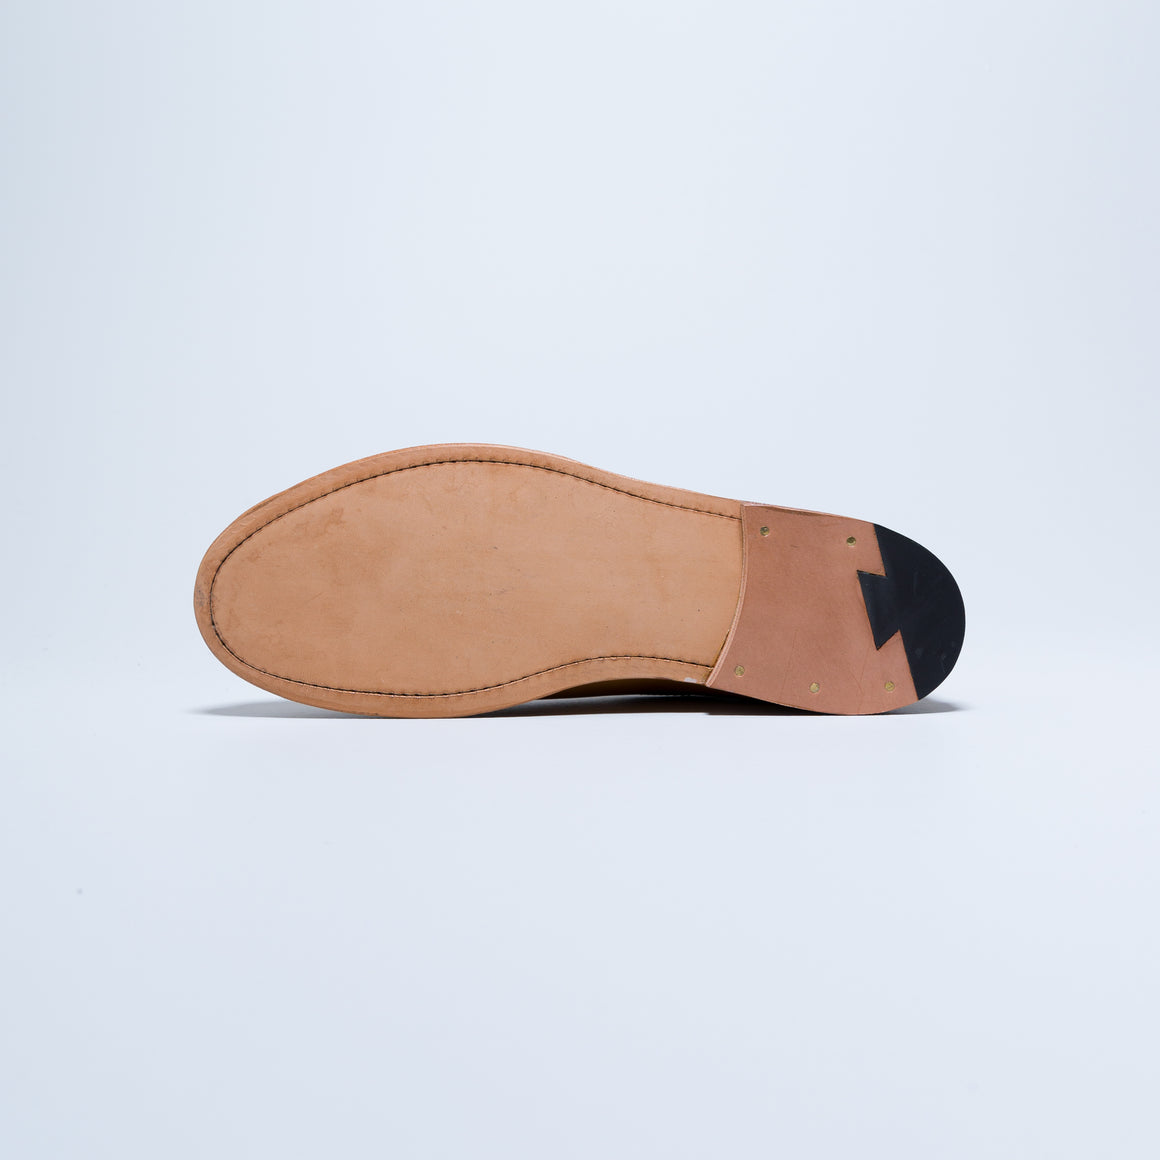 Slippers - Dainichi Natural Calf - Up There